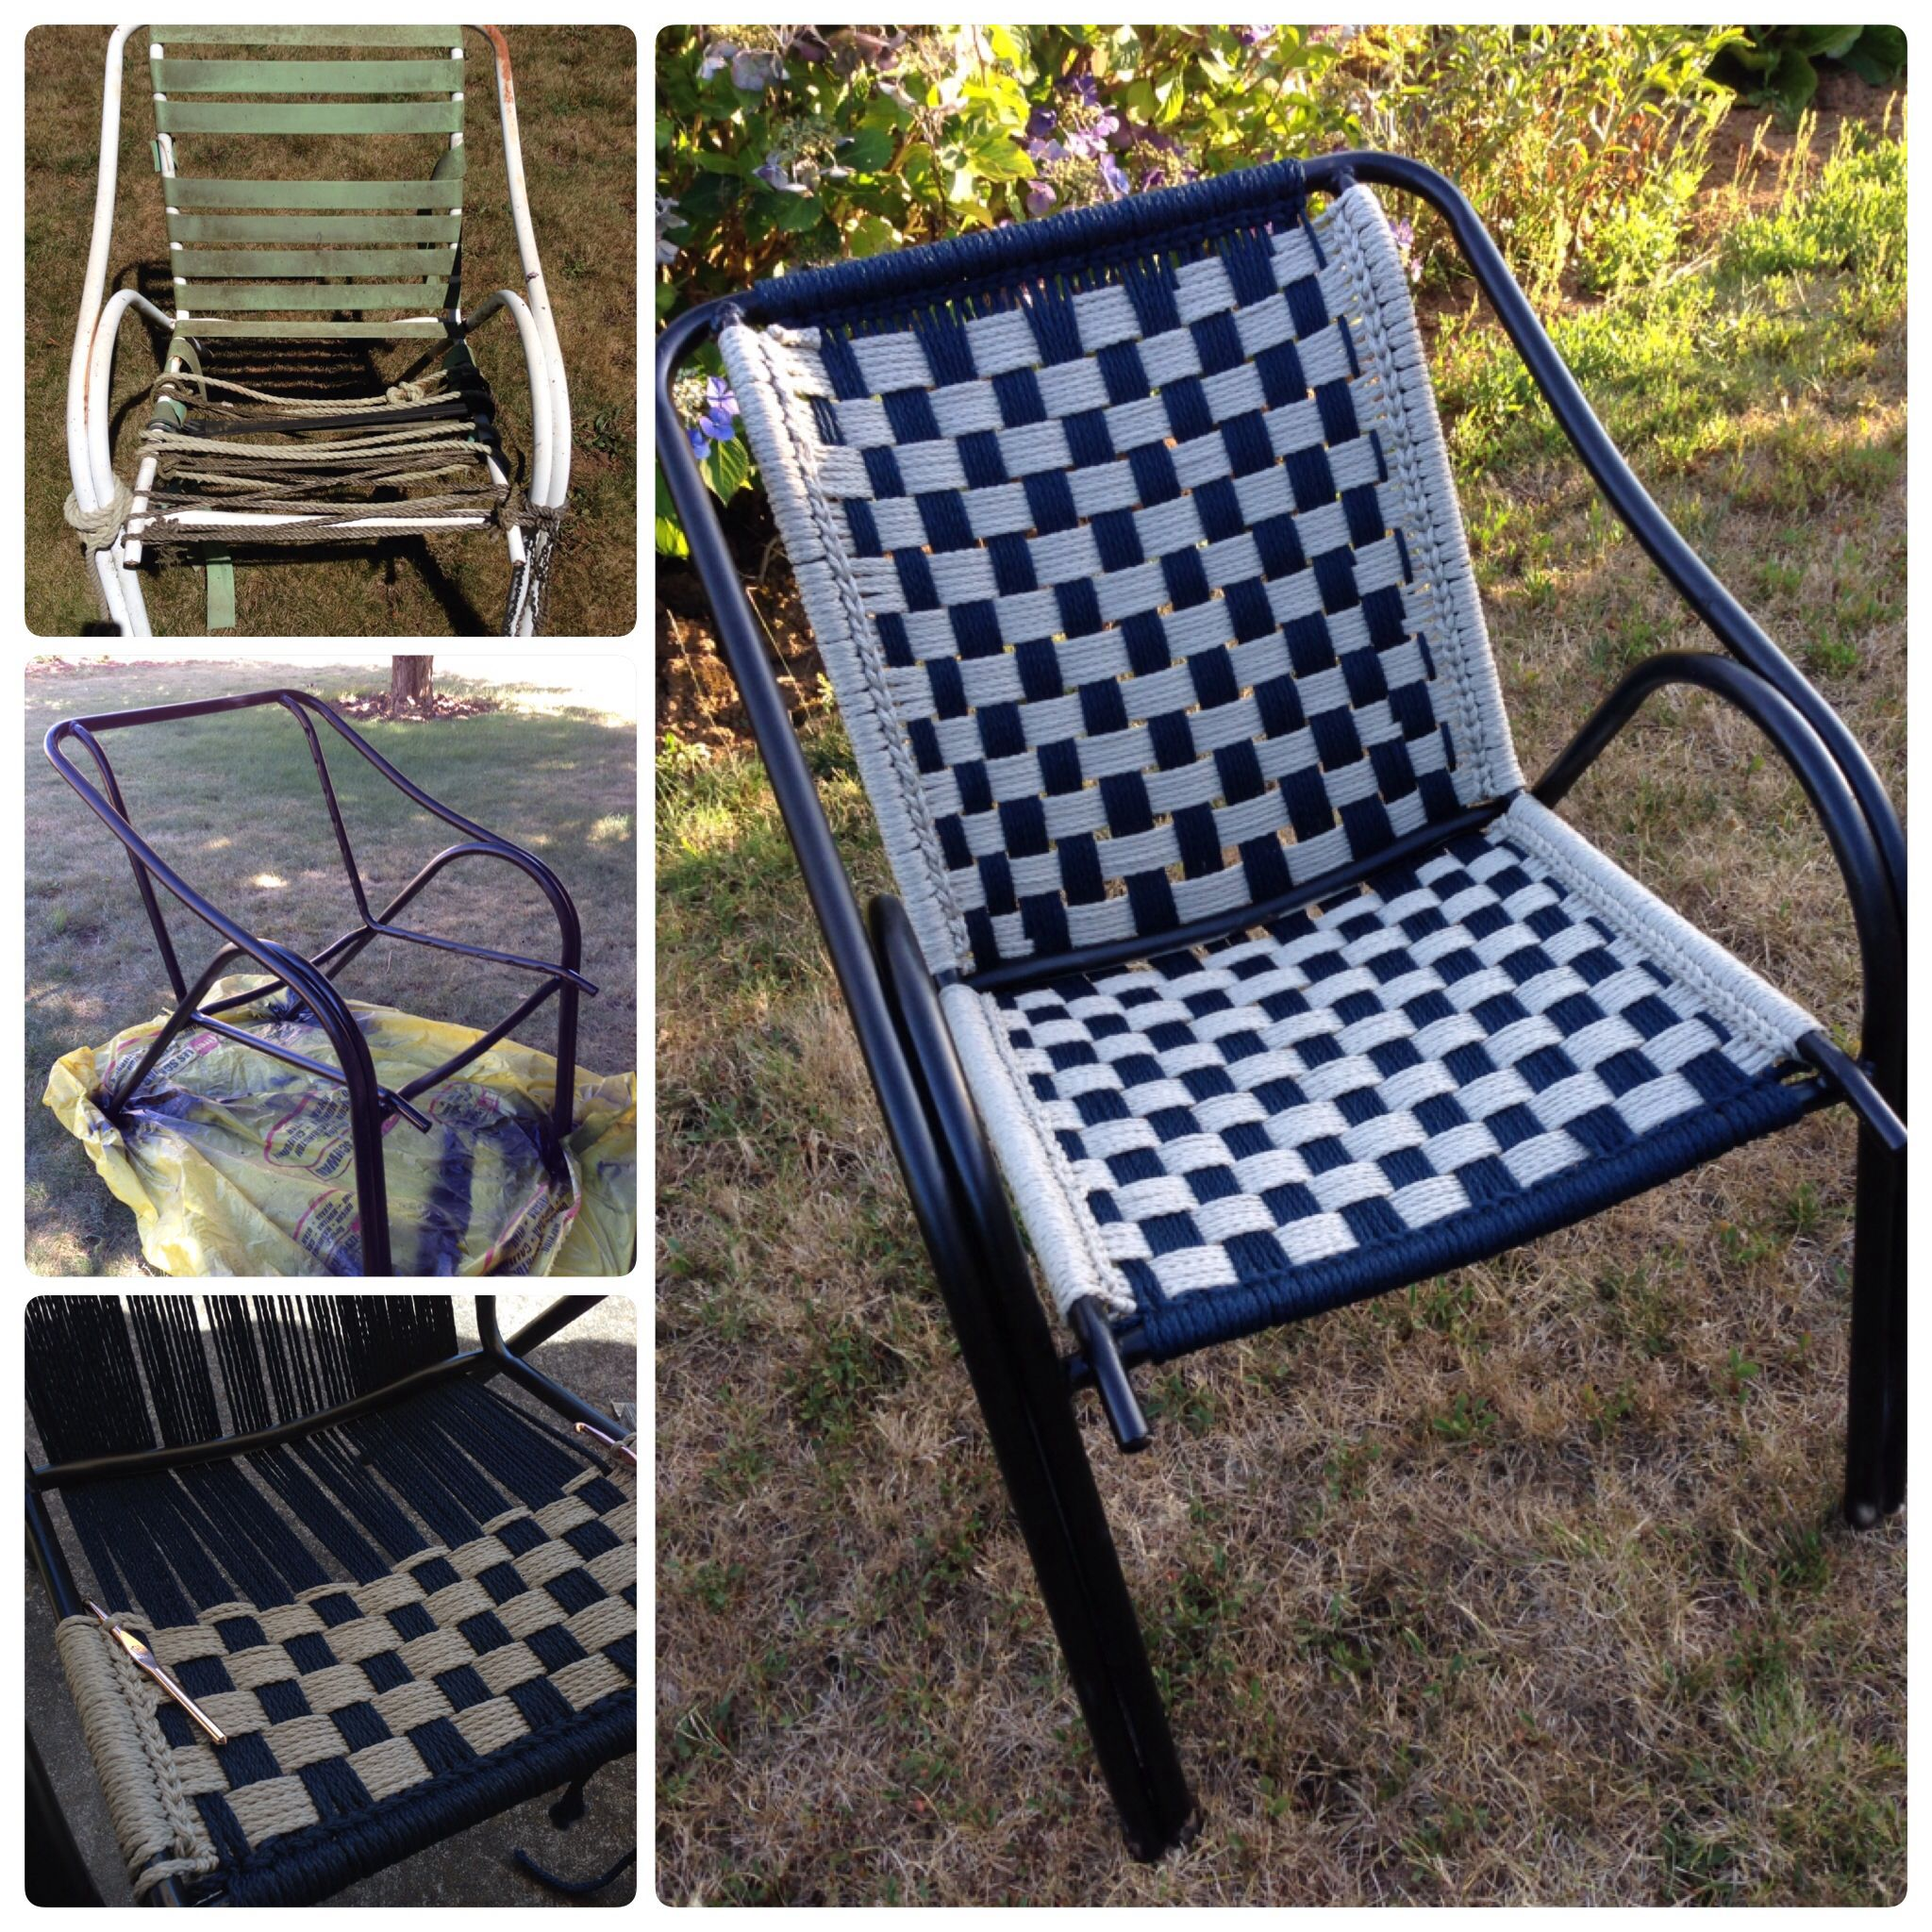 Stupendous Macrame Lawn Chair Macrame Macra Gmtry Best Dining Table And Chair Ideas Images Gmtryco